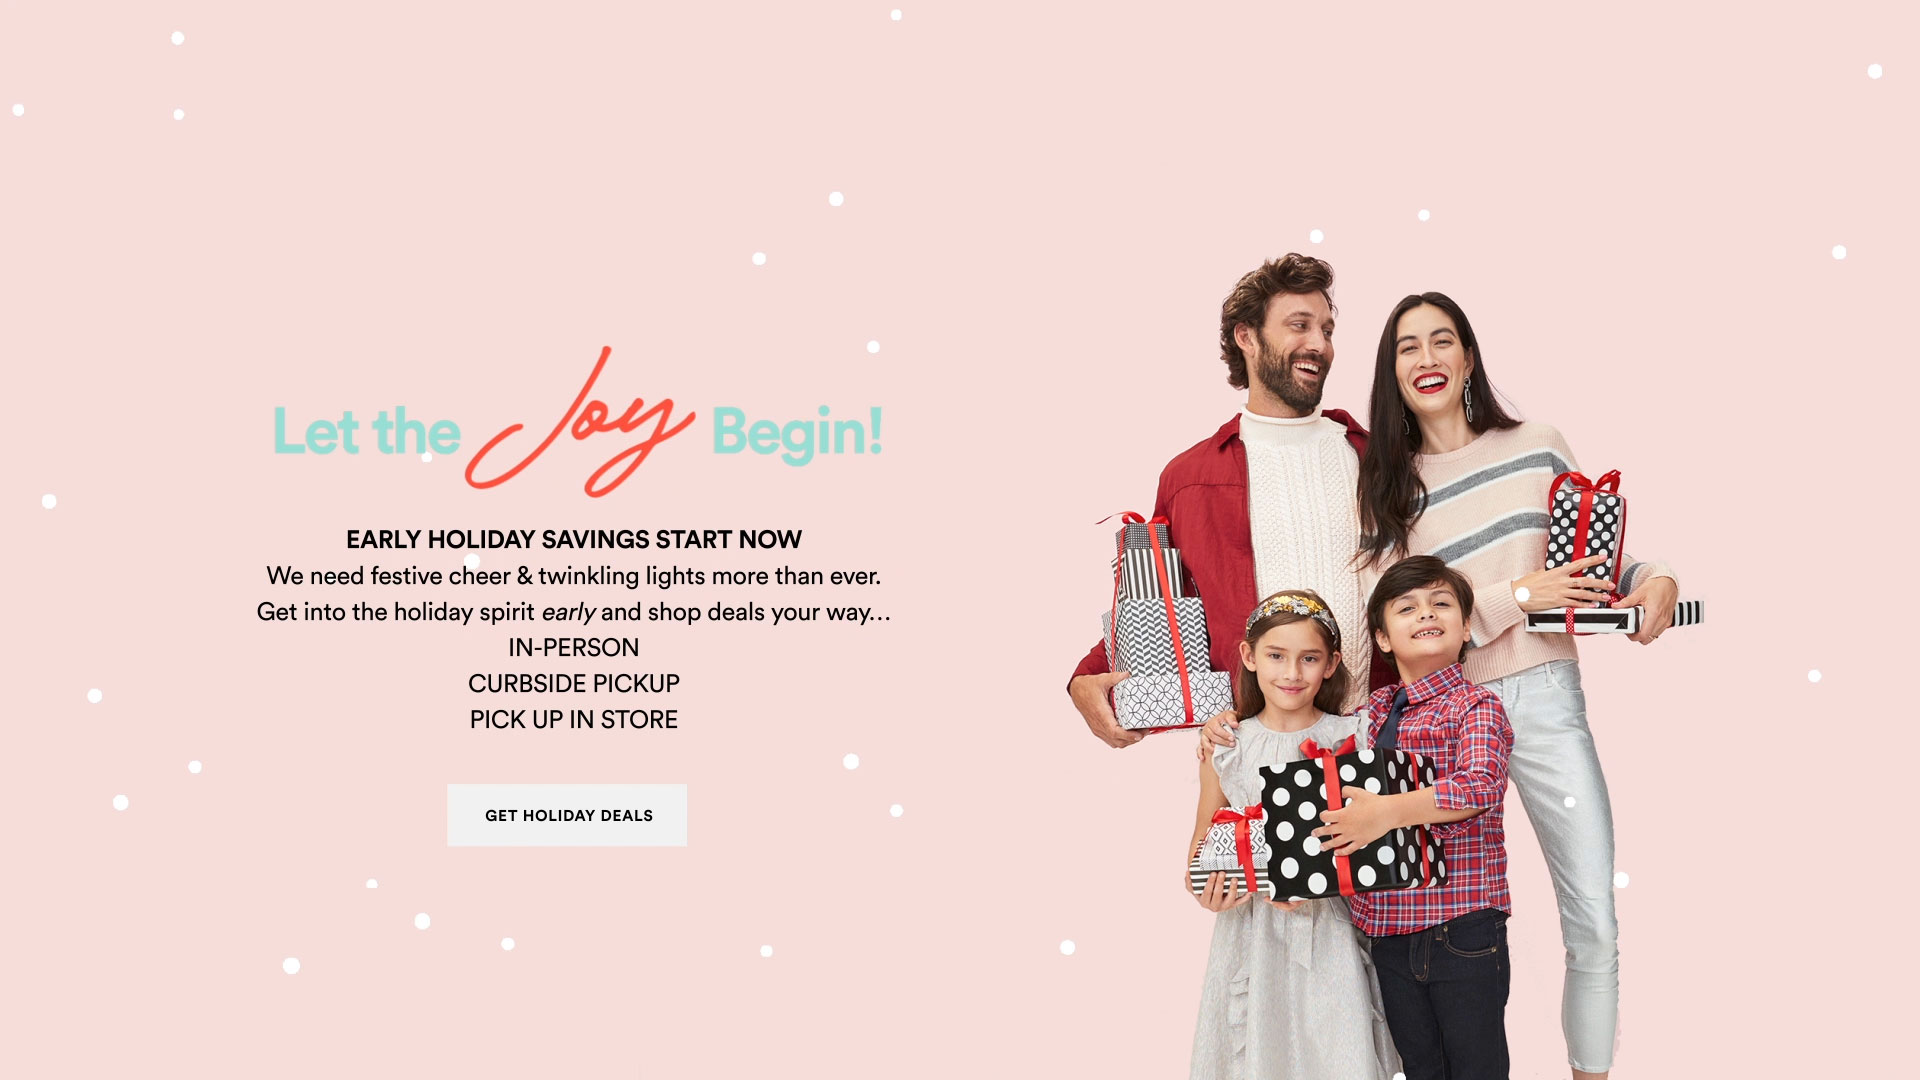 all mass expression centers - hero - let the joy/savings begin image